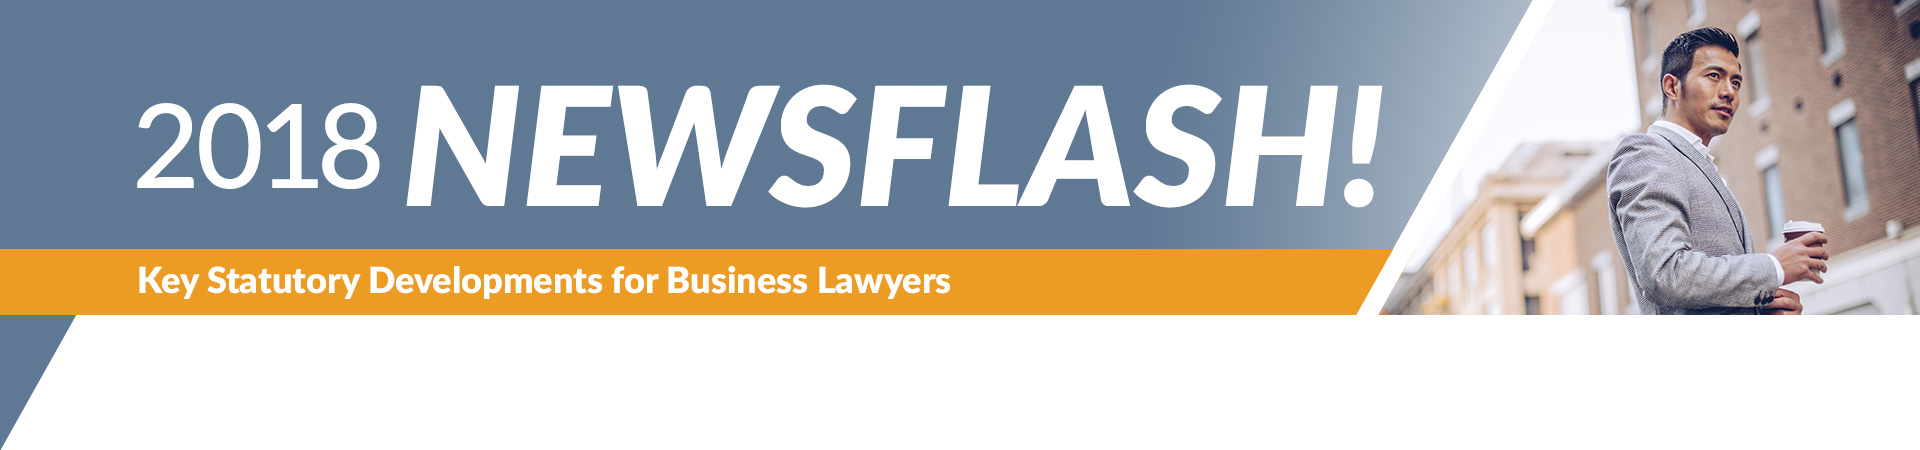 2018 NewsFlash Business Law